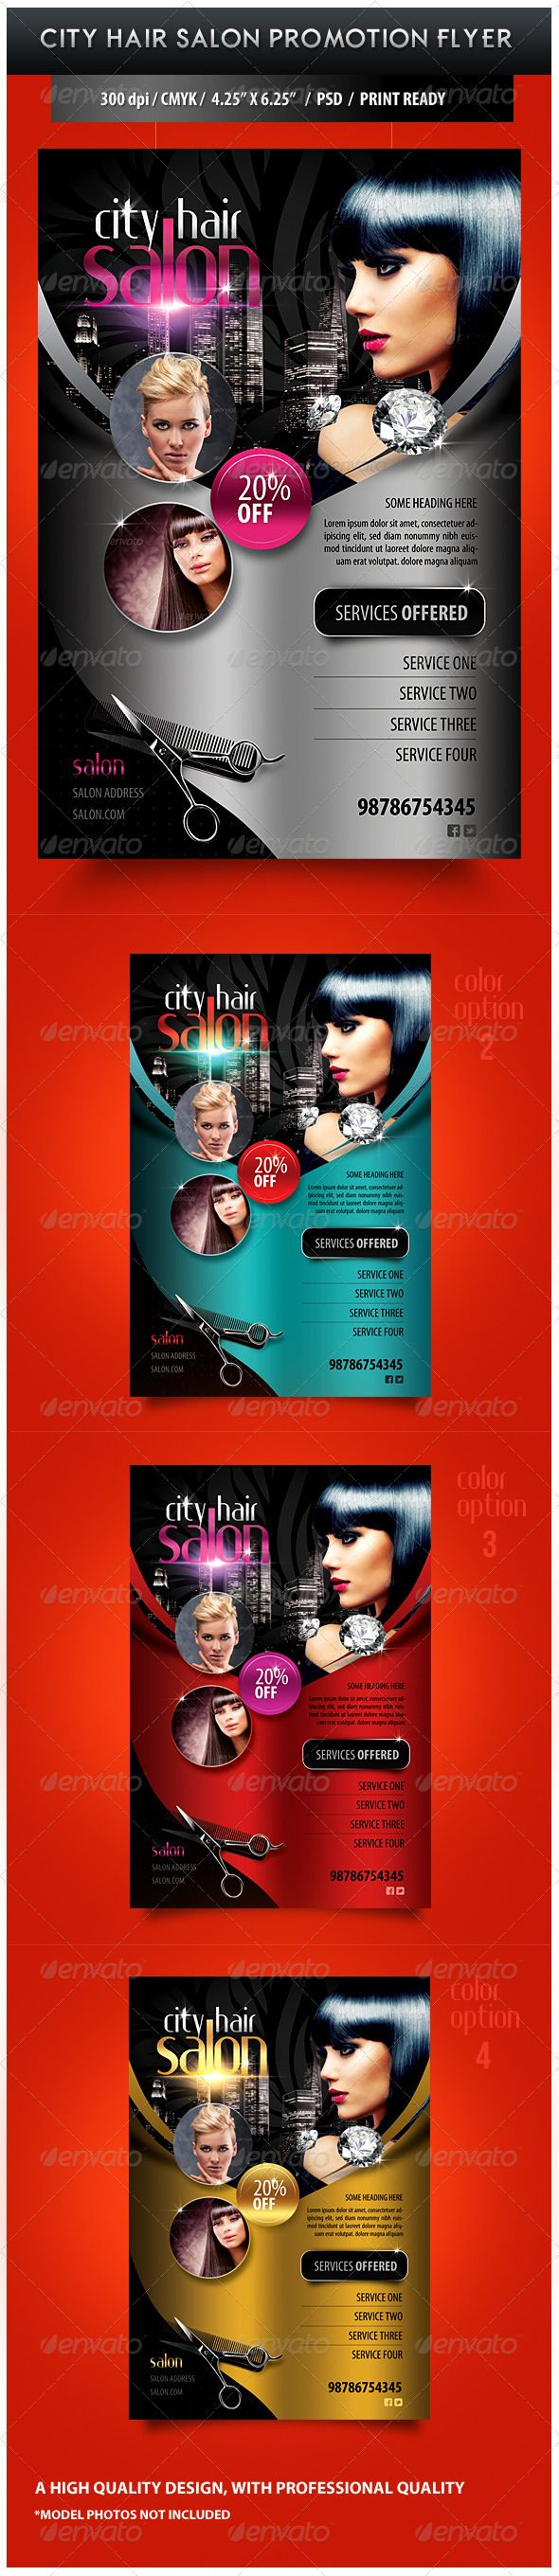 City Hair Salon Promotional Flyer Design Template - Miscellaneous Events Flyer Design Template PSD. Download here: https://graphicriver.net/item/city-hair-salon-promotional-flyer/3674308?ref=yinkira